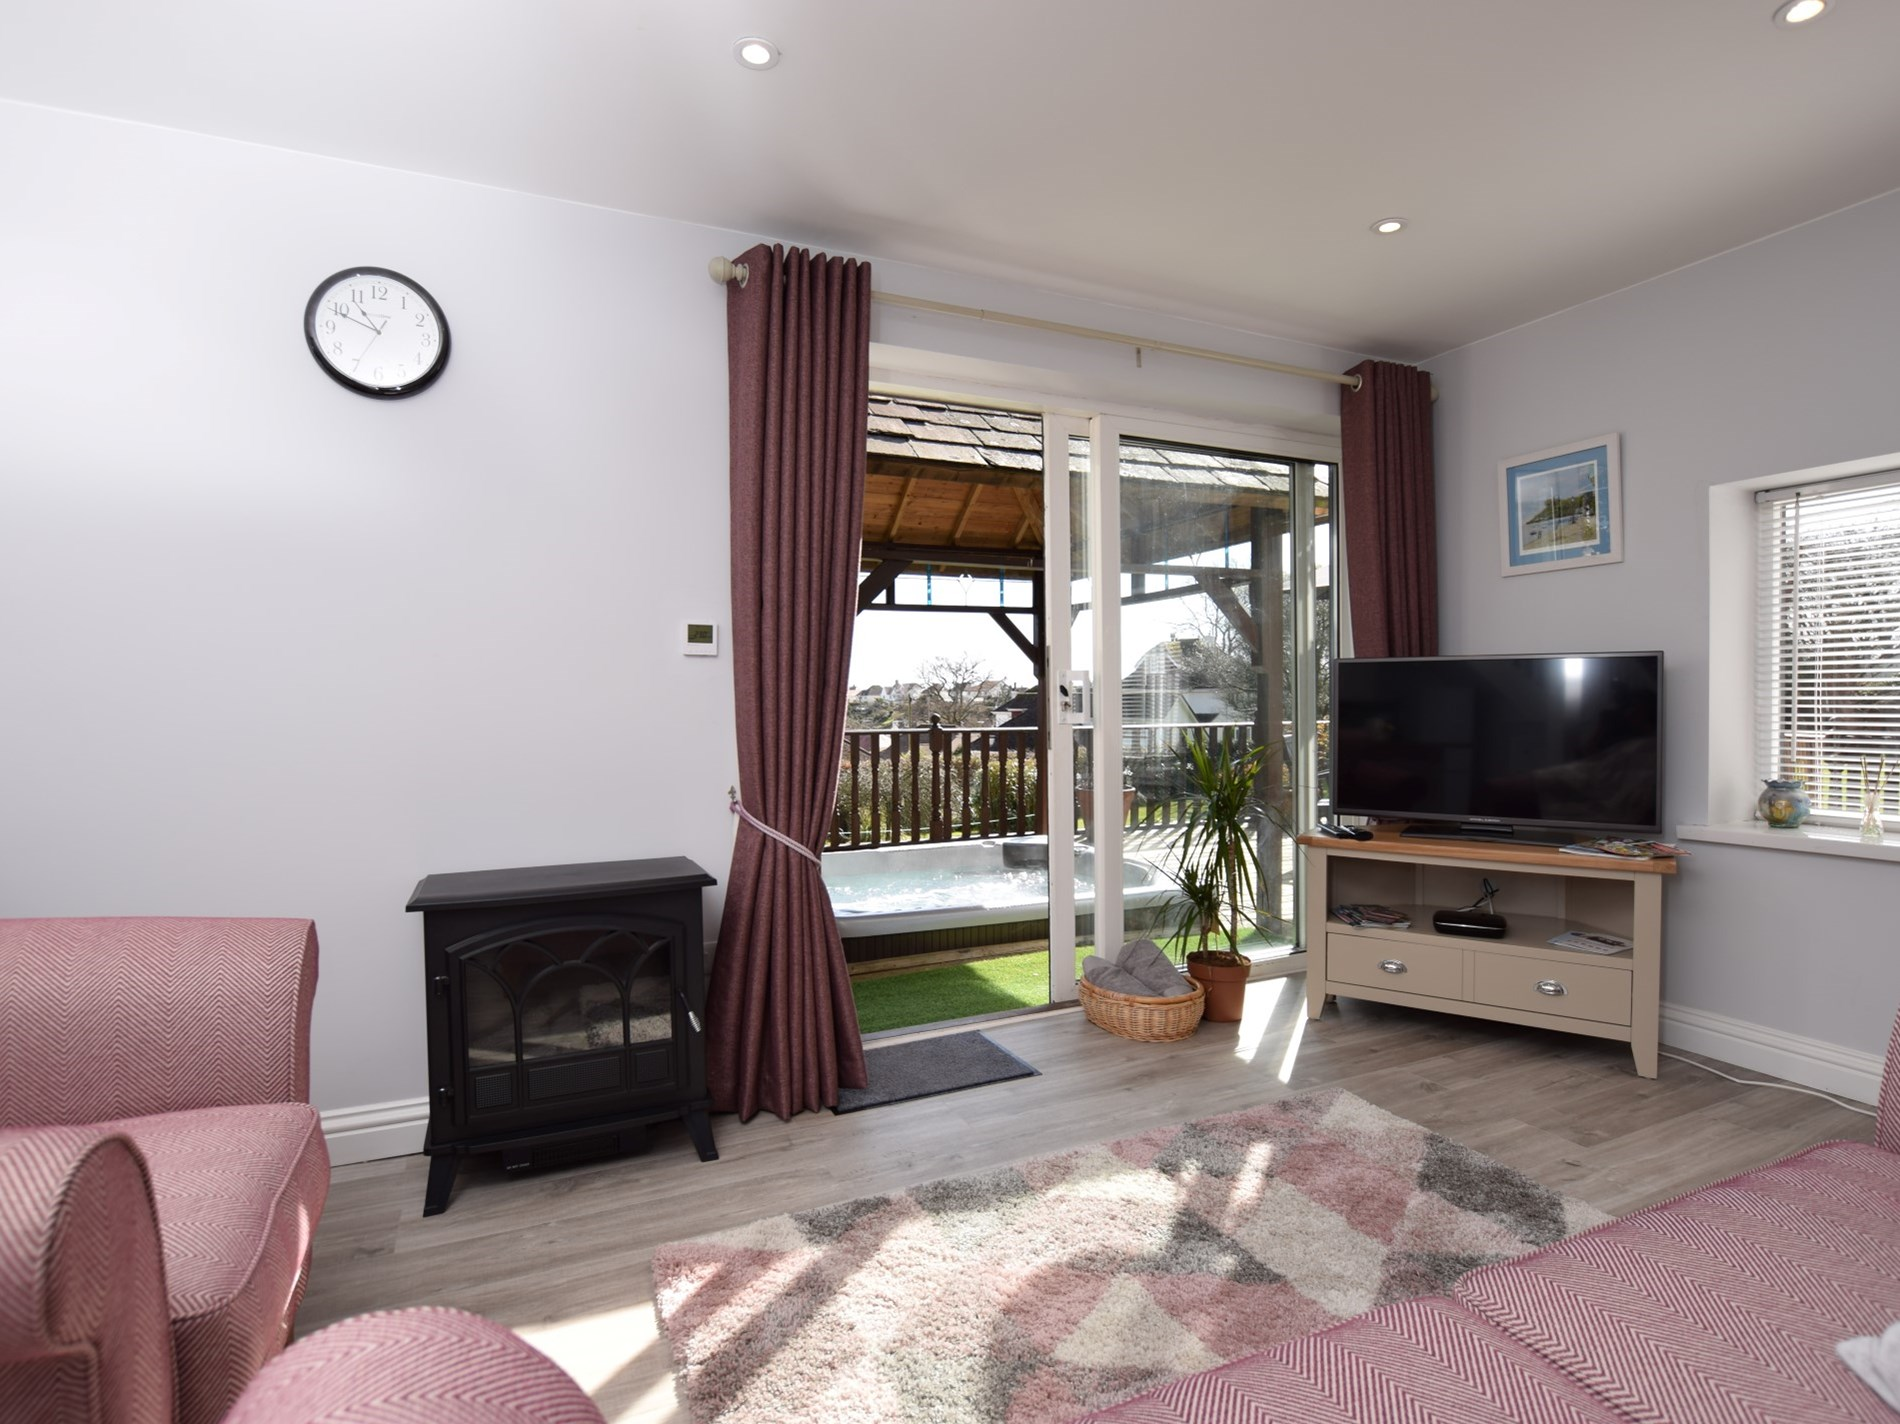 The warm and welcoming lounge with garden view